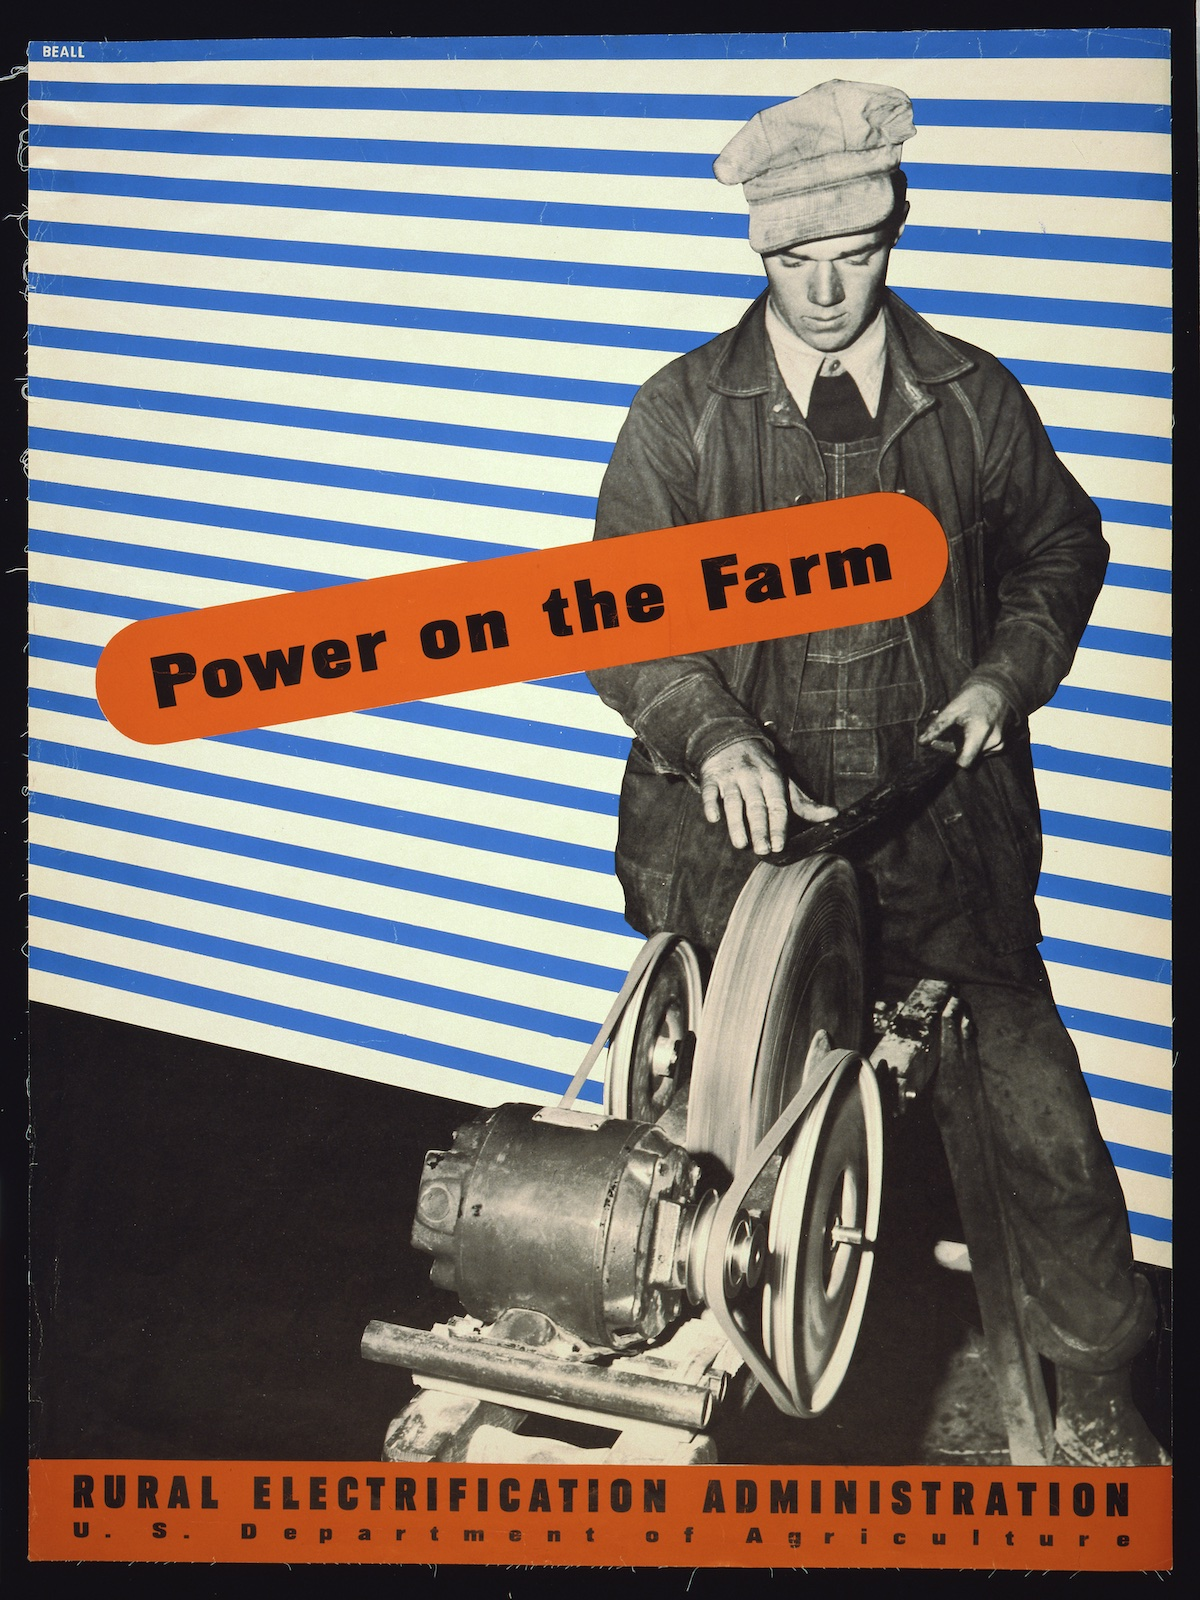 'Power on the farm' Rural Electrification poster by Lester Beall - 1930